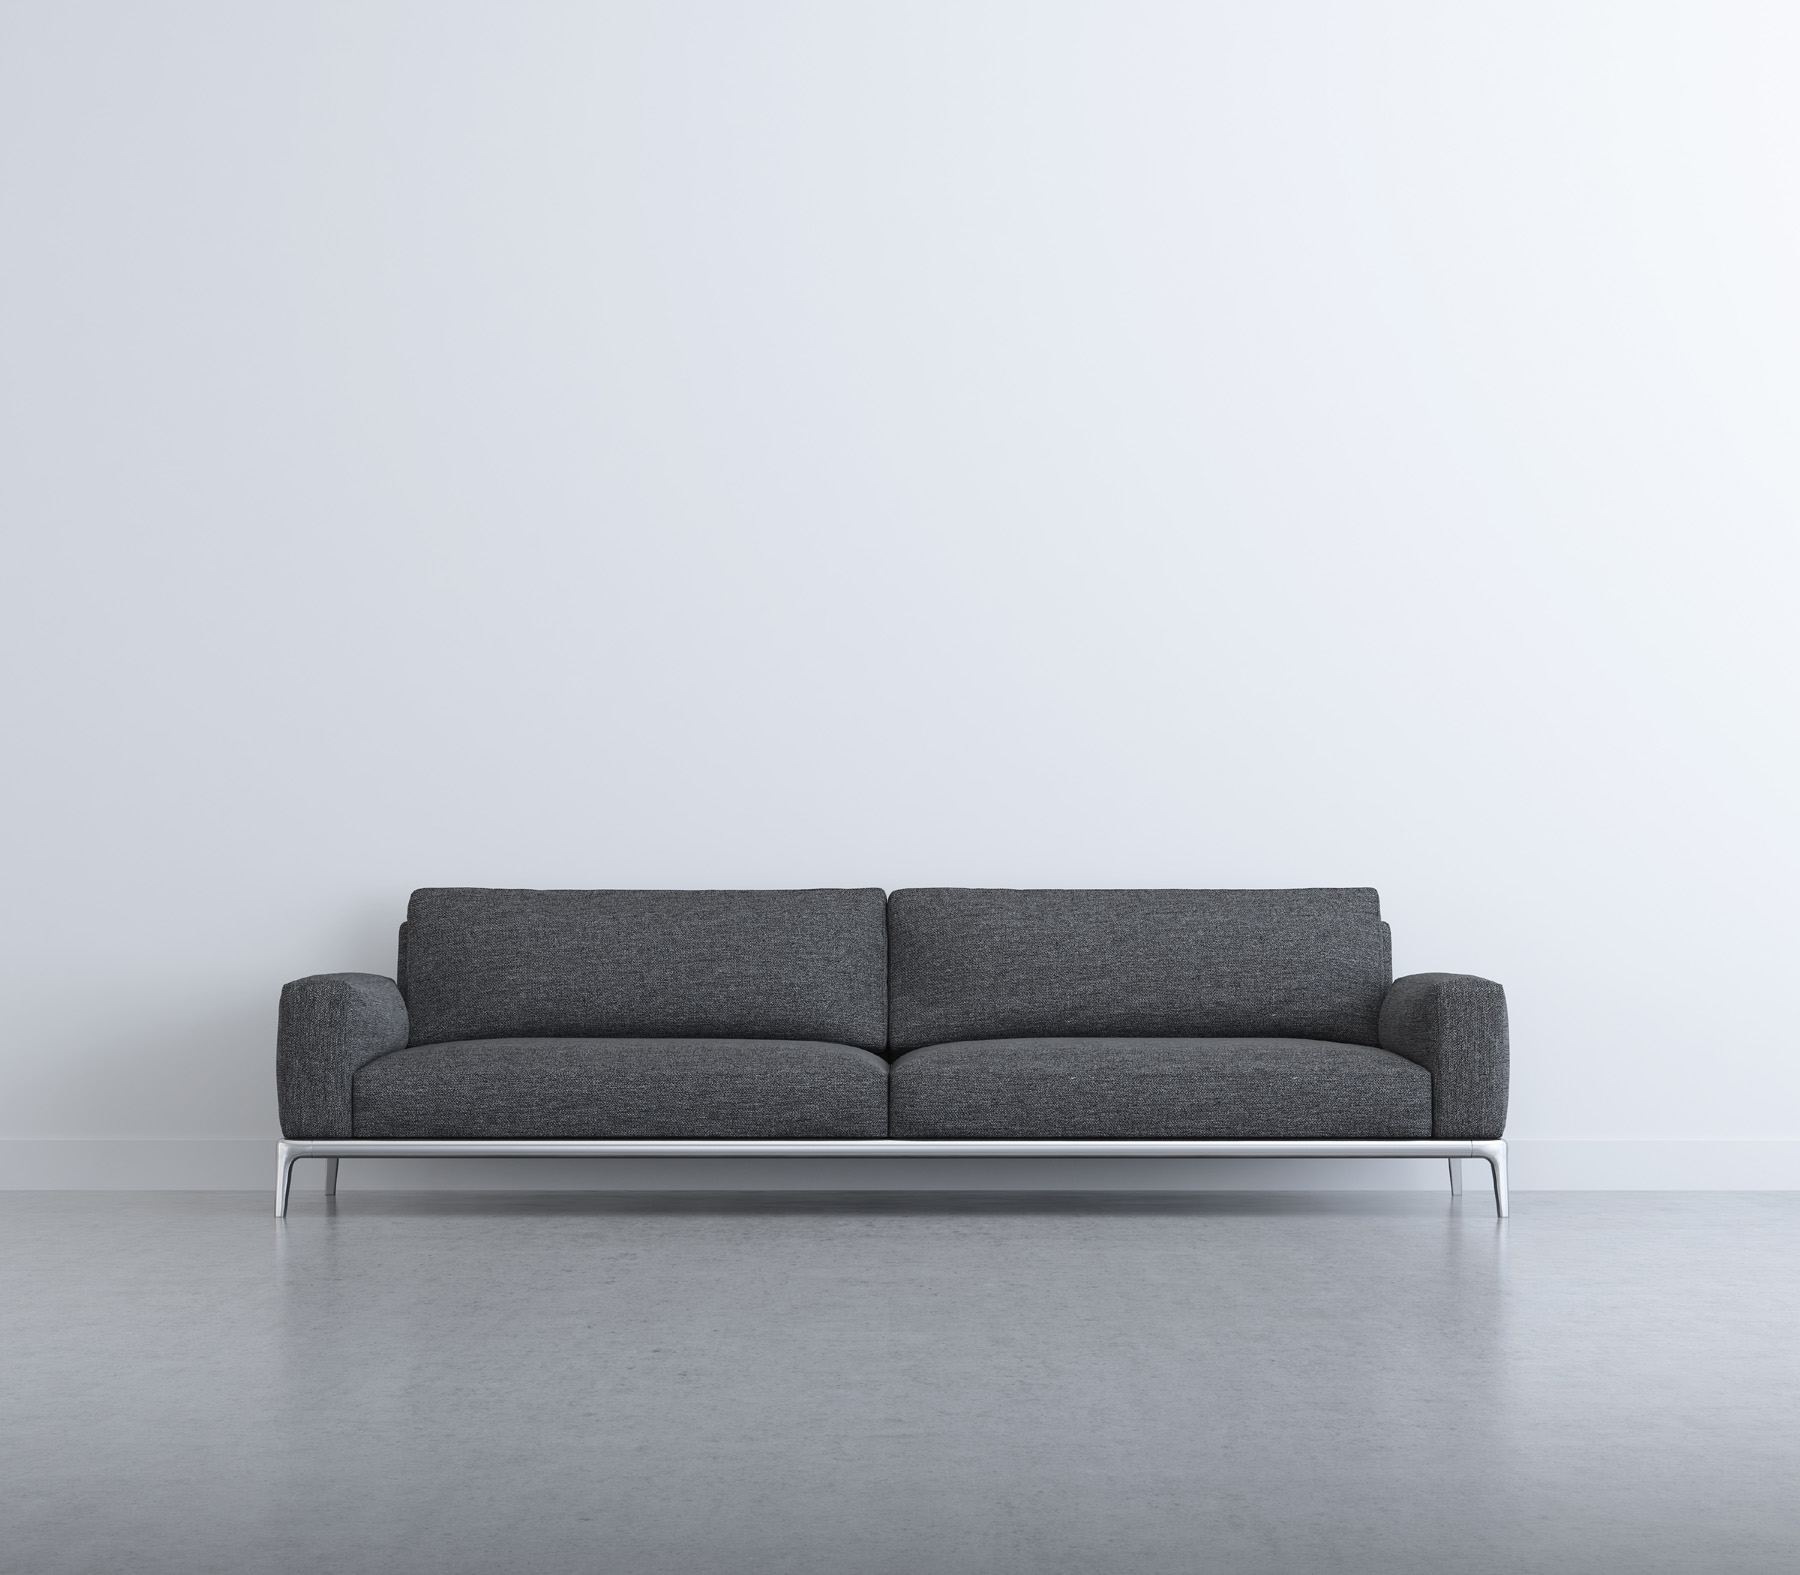 Sofa features 51713